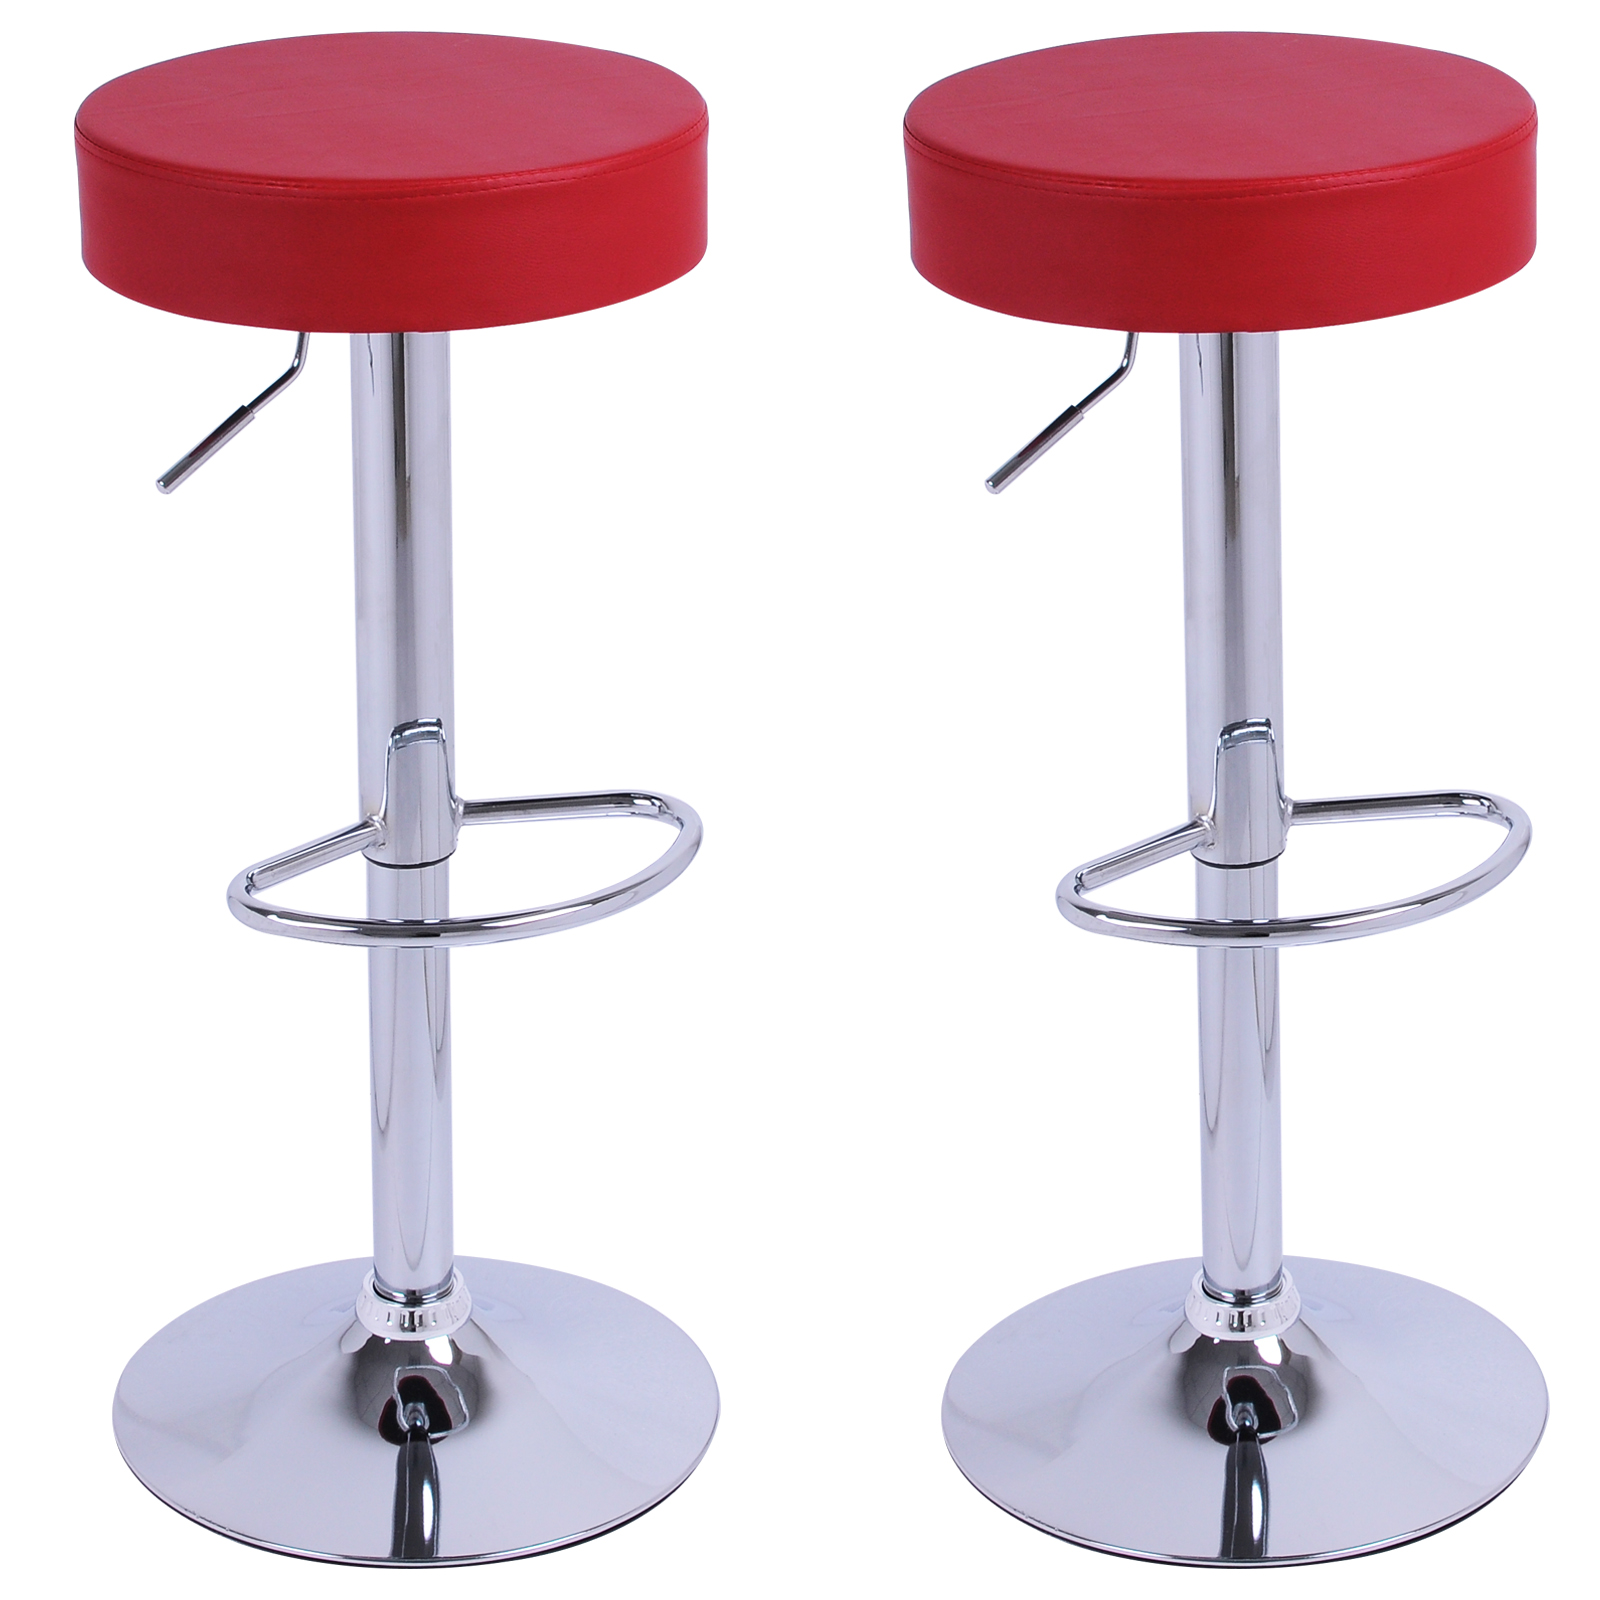 Bar Stools set of 21 Faux Leather Adjust Breakfast Chair  : BH120bd0 from www.ebay.co.uk size 1600 x 1600 jpeg 559kB